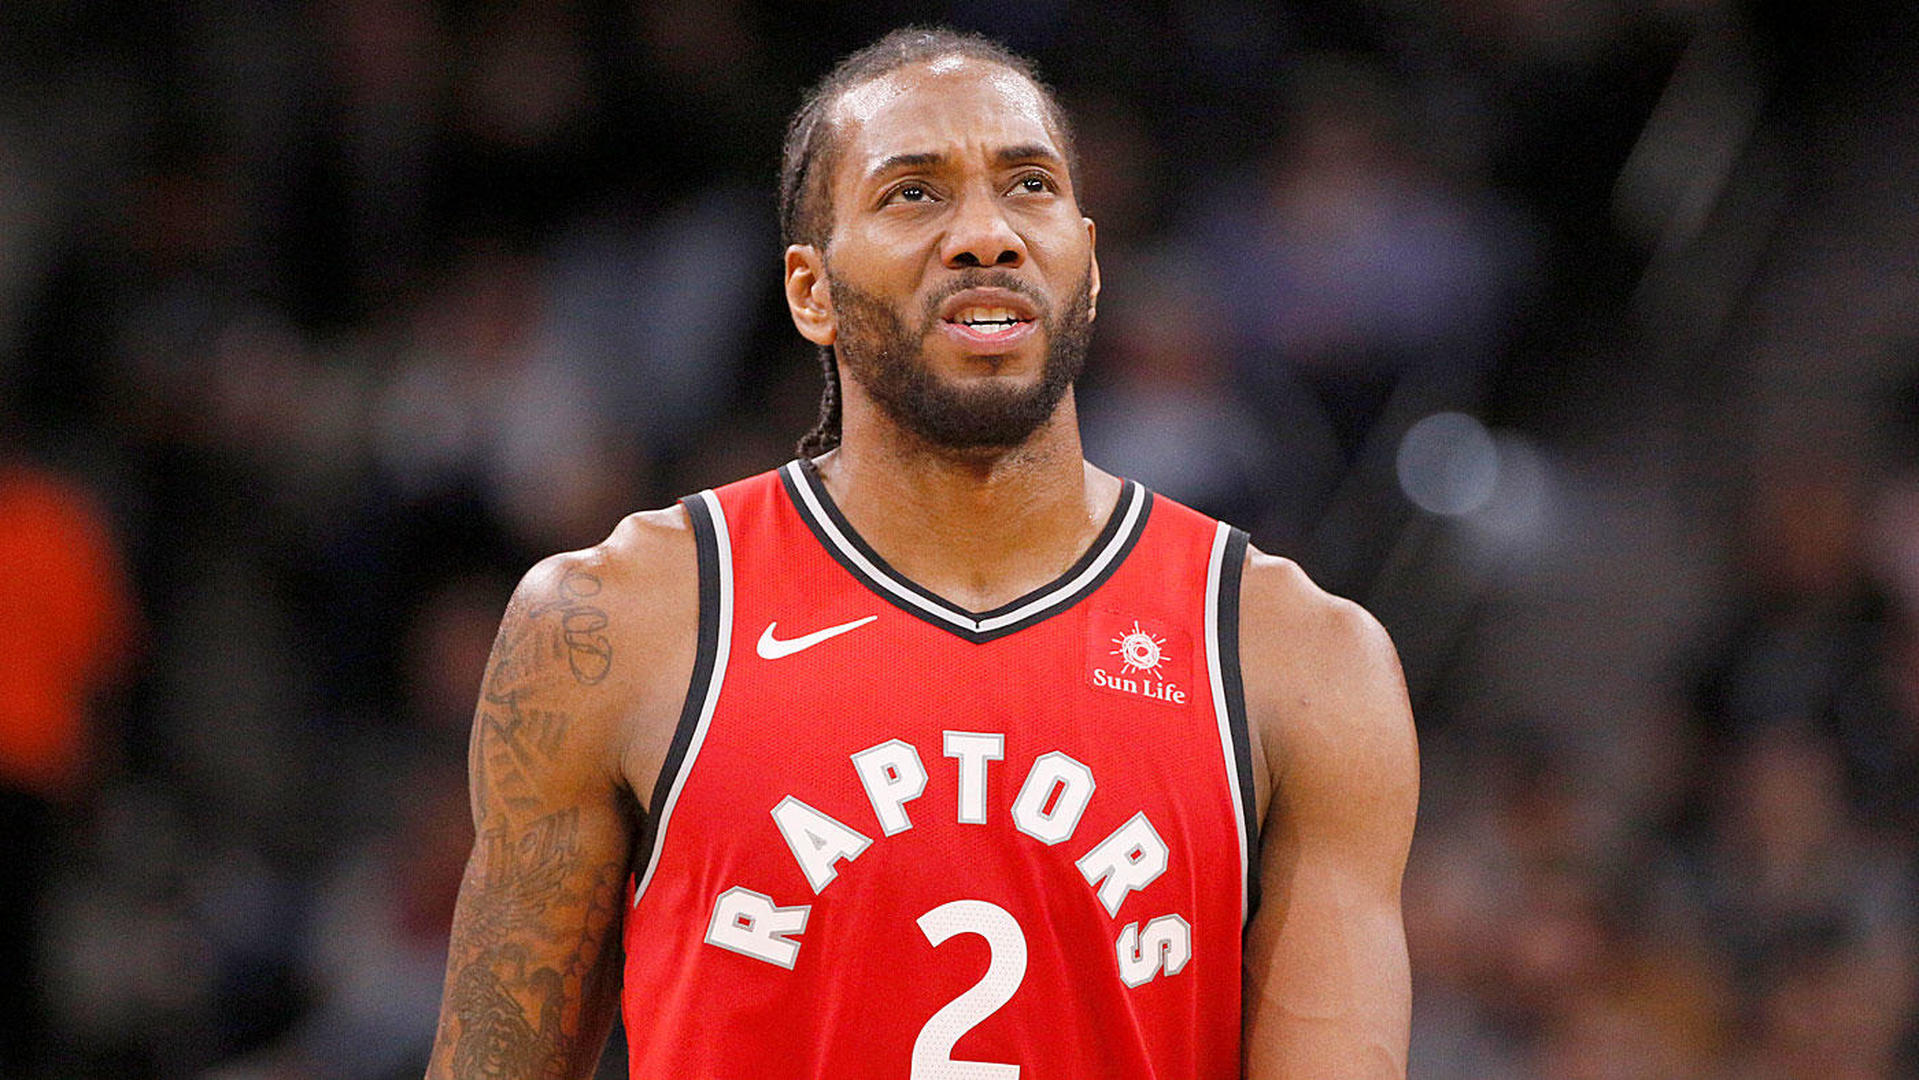 Examining the Raptors' handling of Kawhi Leonard, who continues to miss games for 'load management'